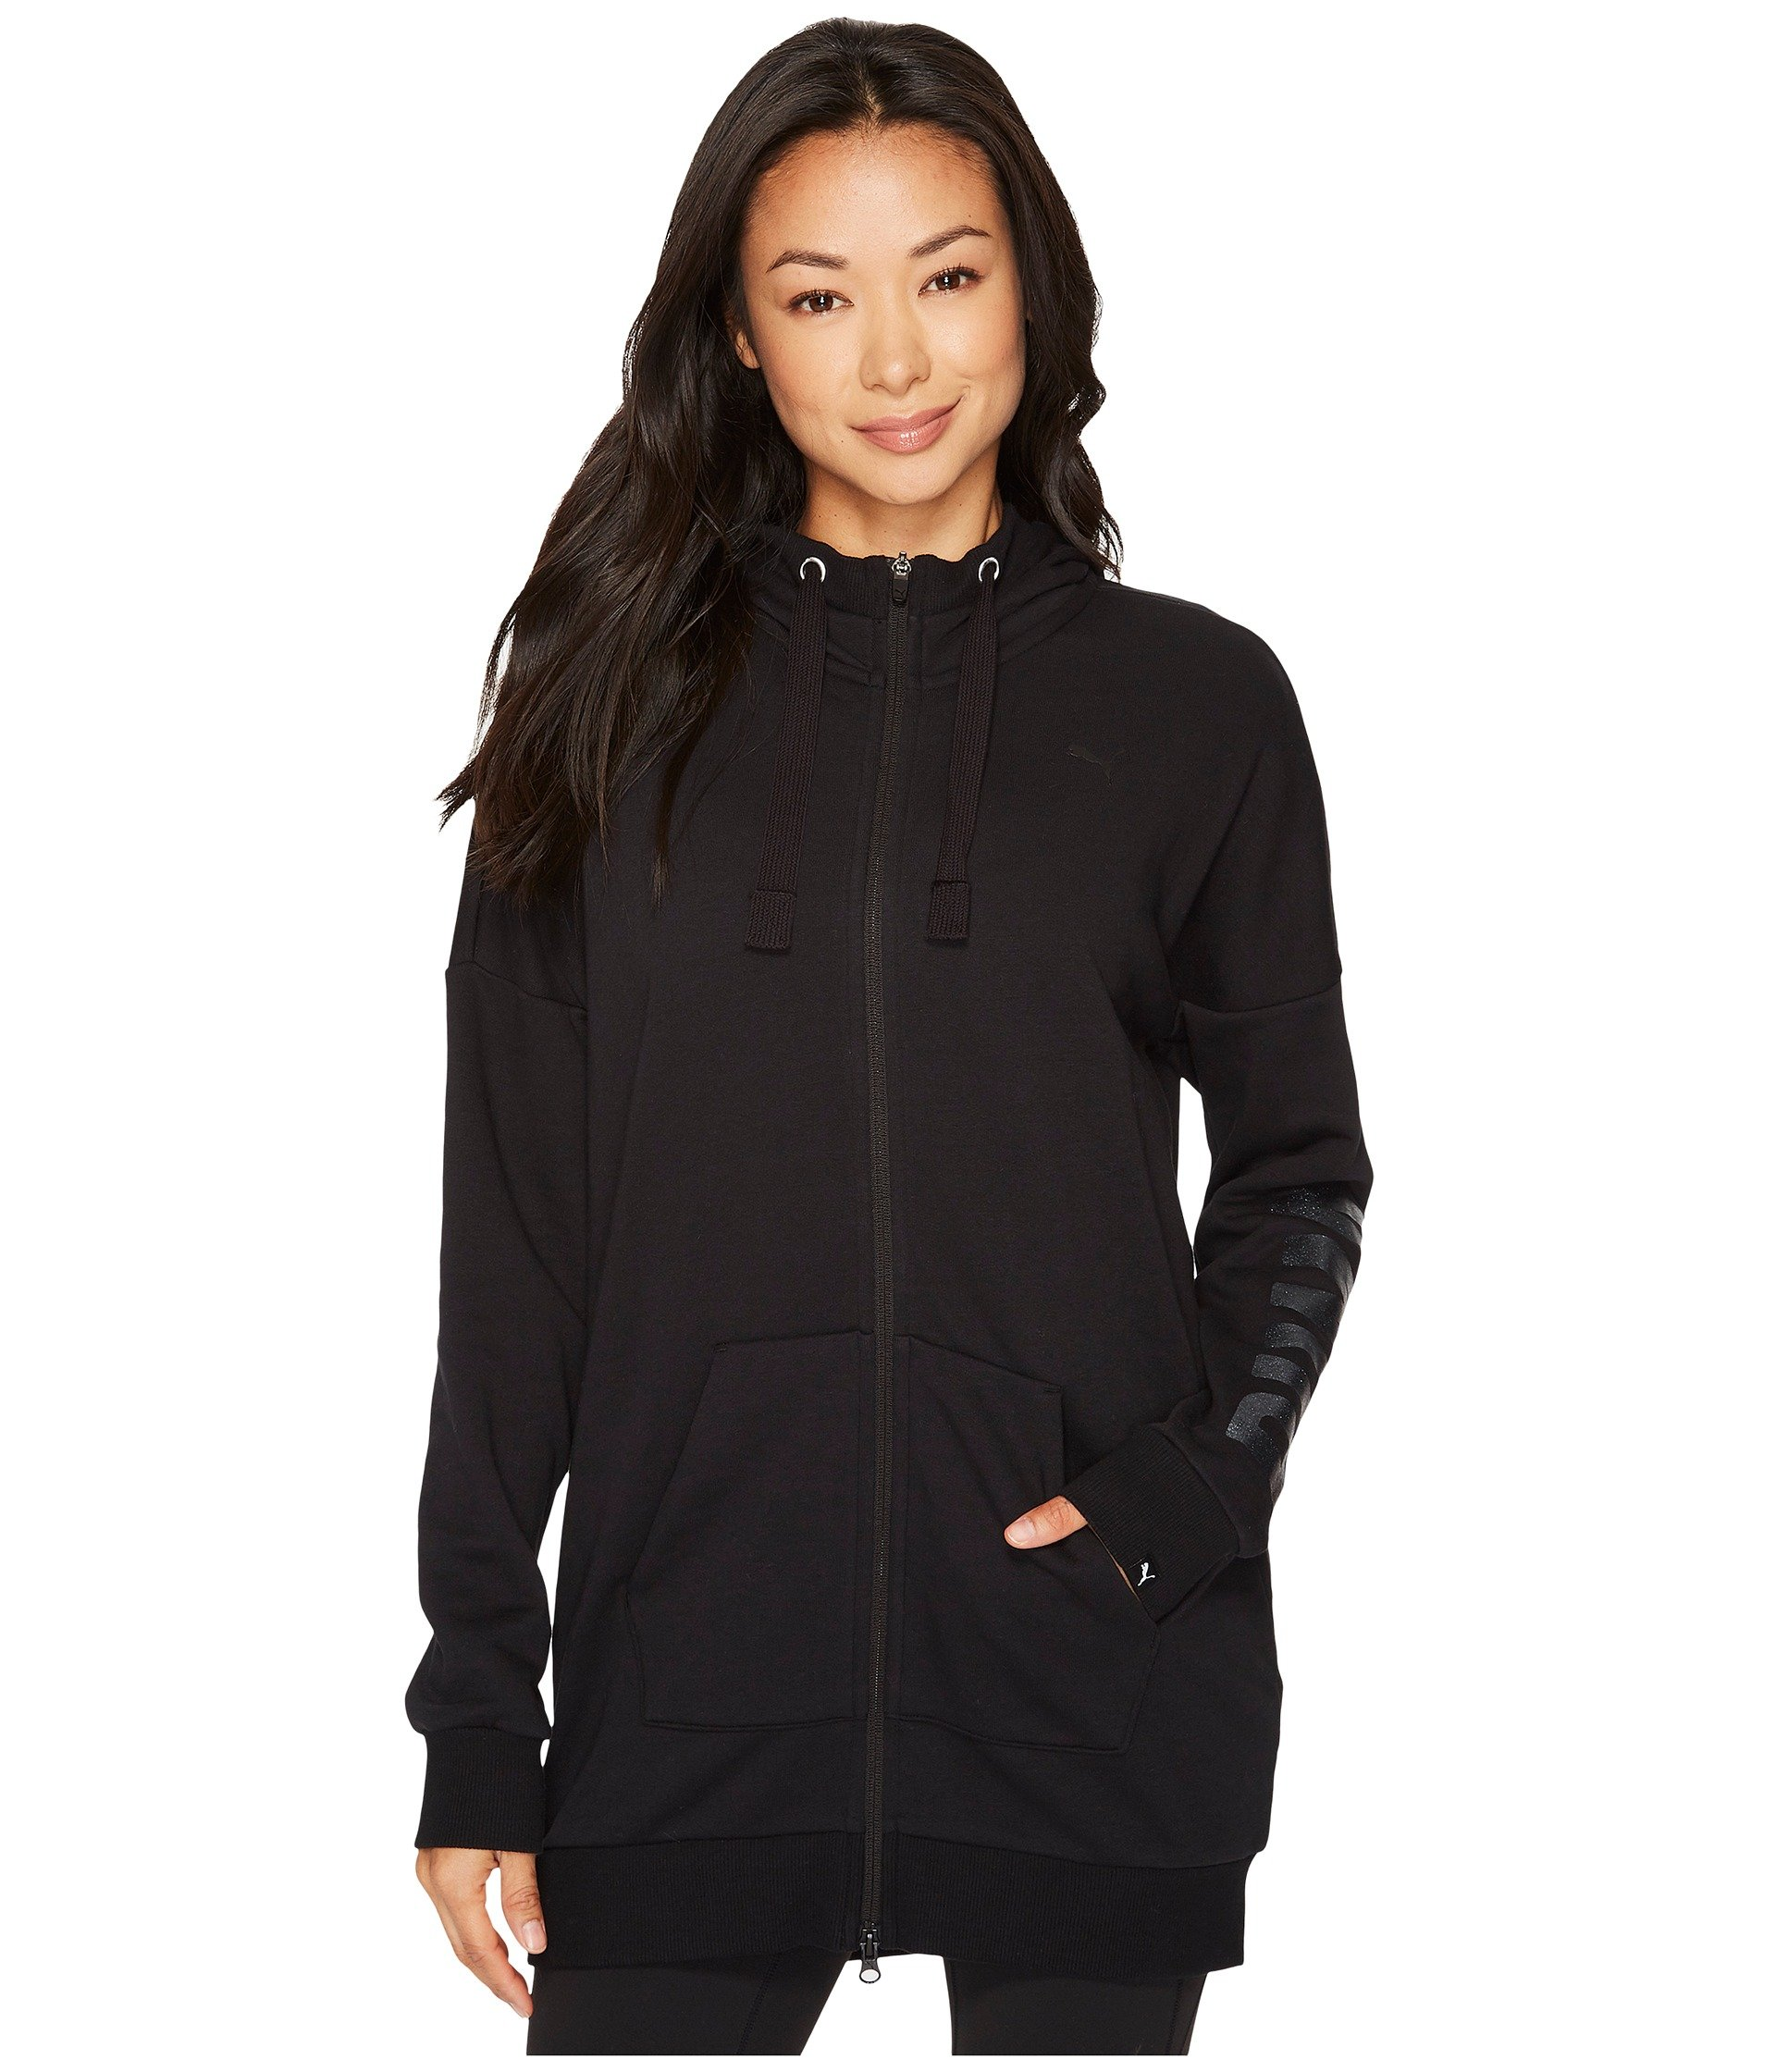 PUMA Women's Fusion Elongated Full Zip Hoodie Cotton Black/Glitter X-Large